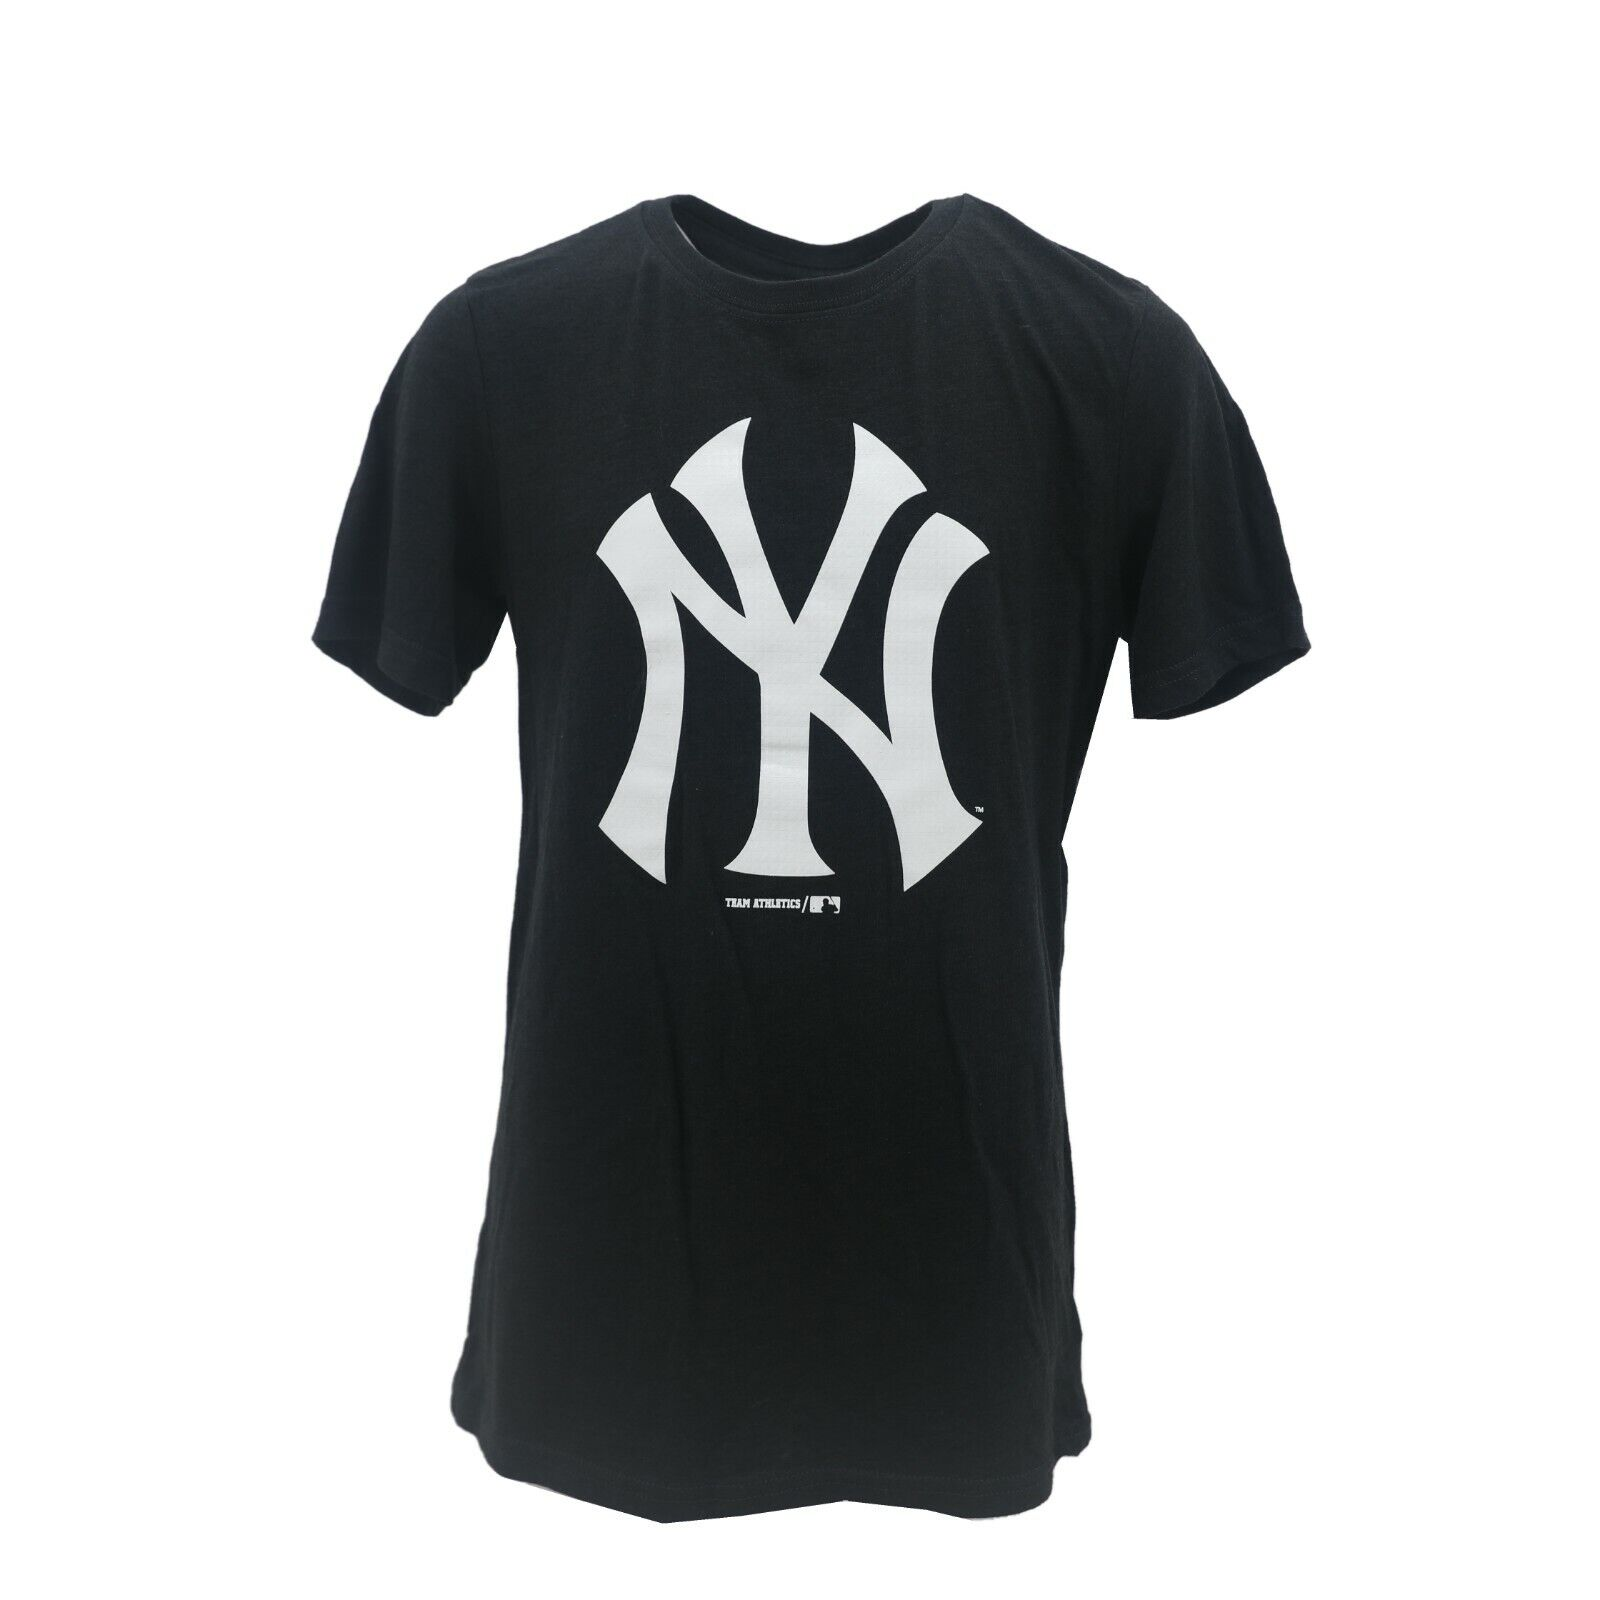 faf379f3 Details about New York Yankees Official MLB Genuine Apparel Kids Youth Size  T-Shirt New Tags